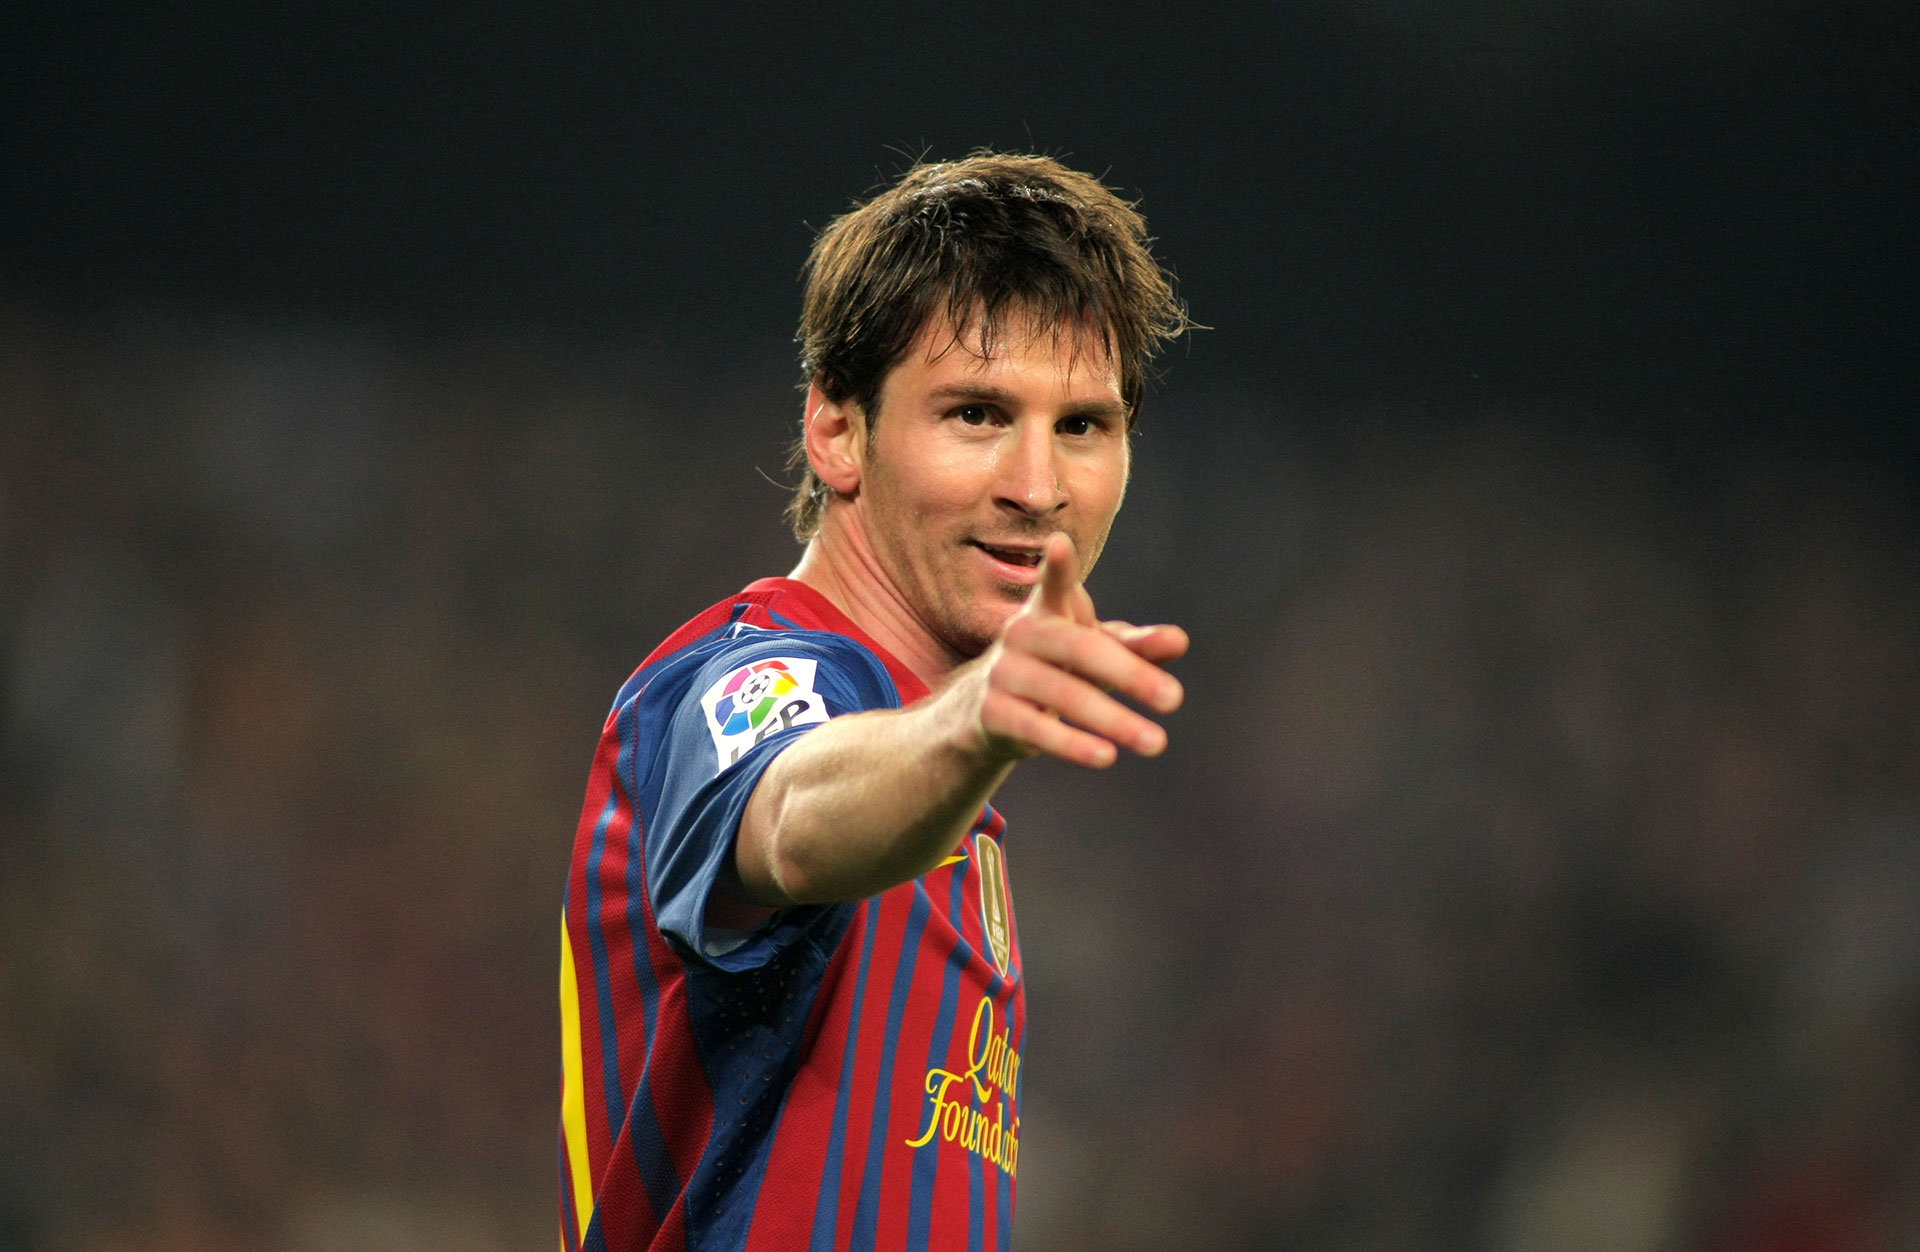 Why Lionel Messi Sucks – Is Messi Really Overrated?